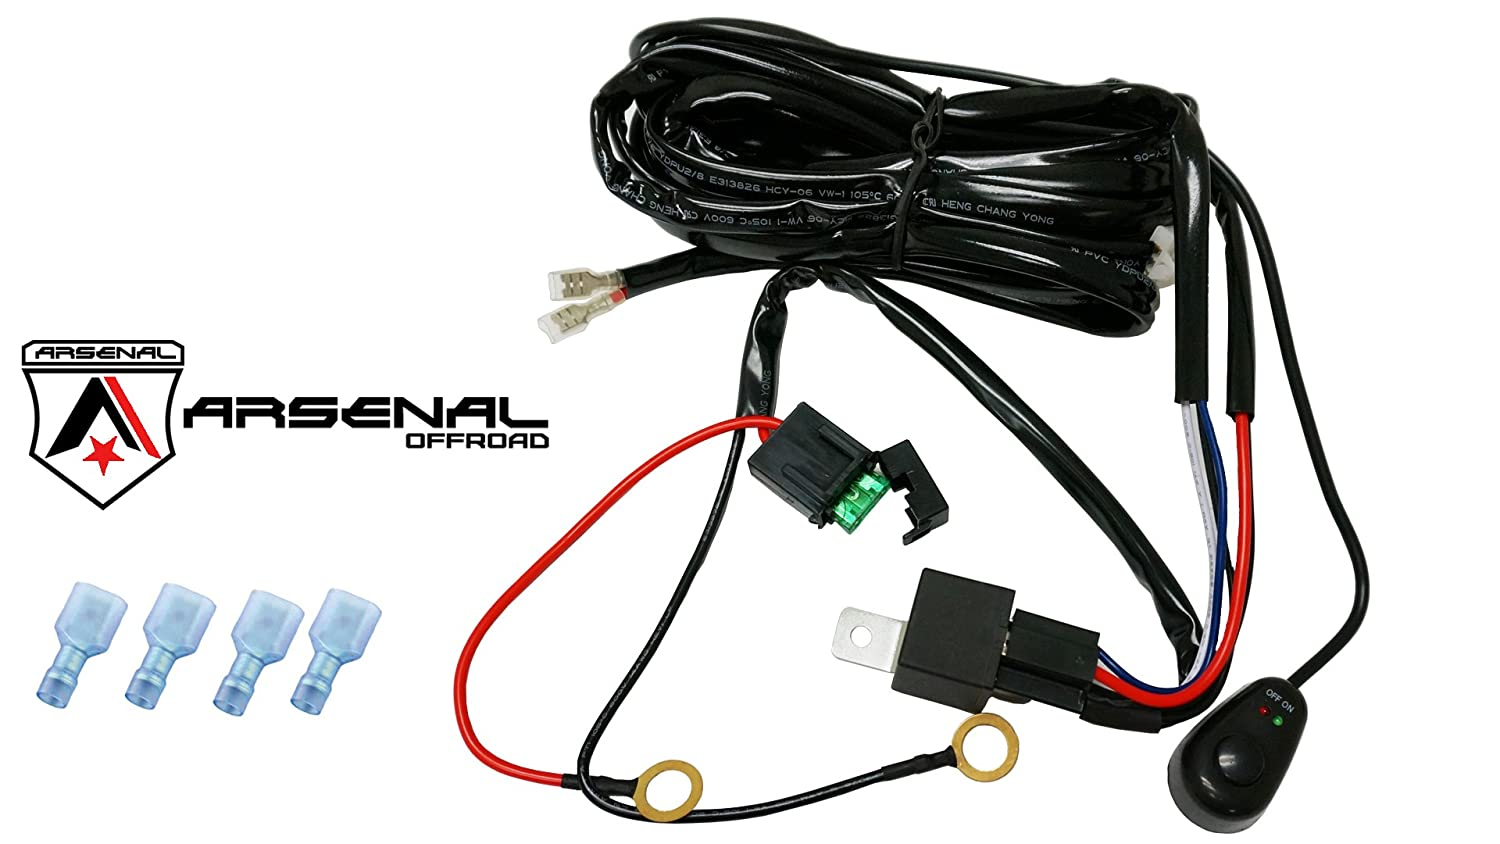 717KJzfkLyL._SL1500_ amazon com 1 arsenal offroad led light bar universal wiring led light wiring harness at readyjetset.co